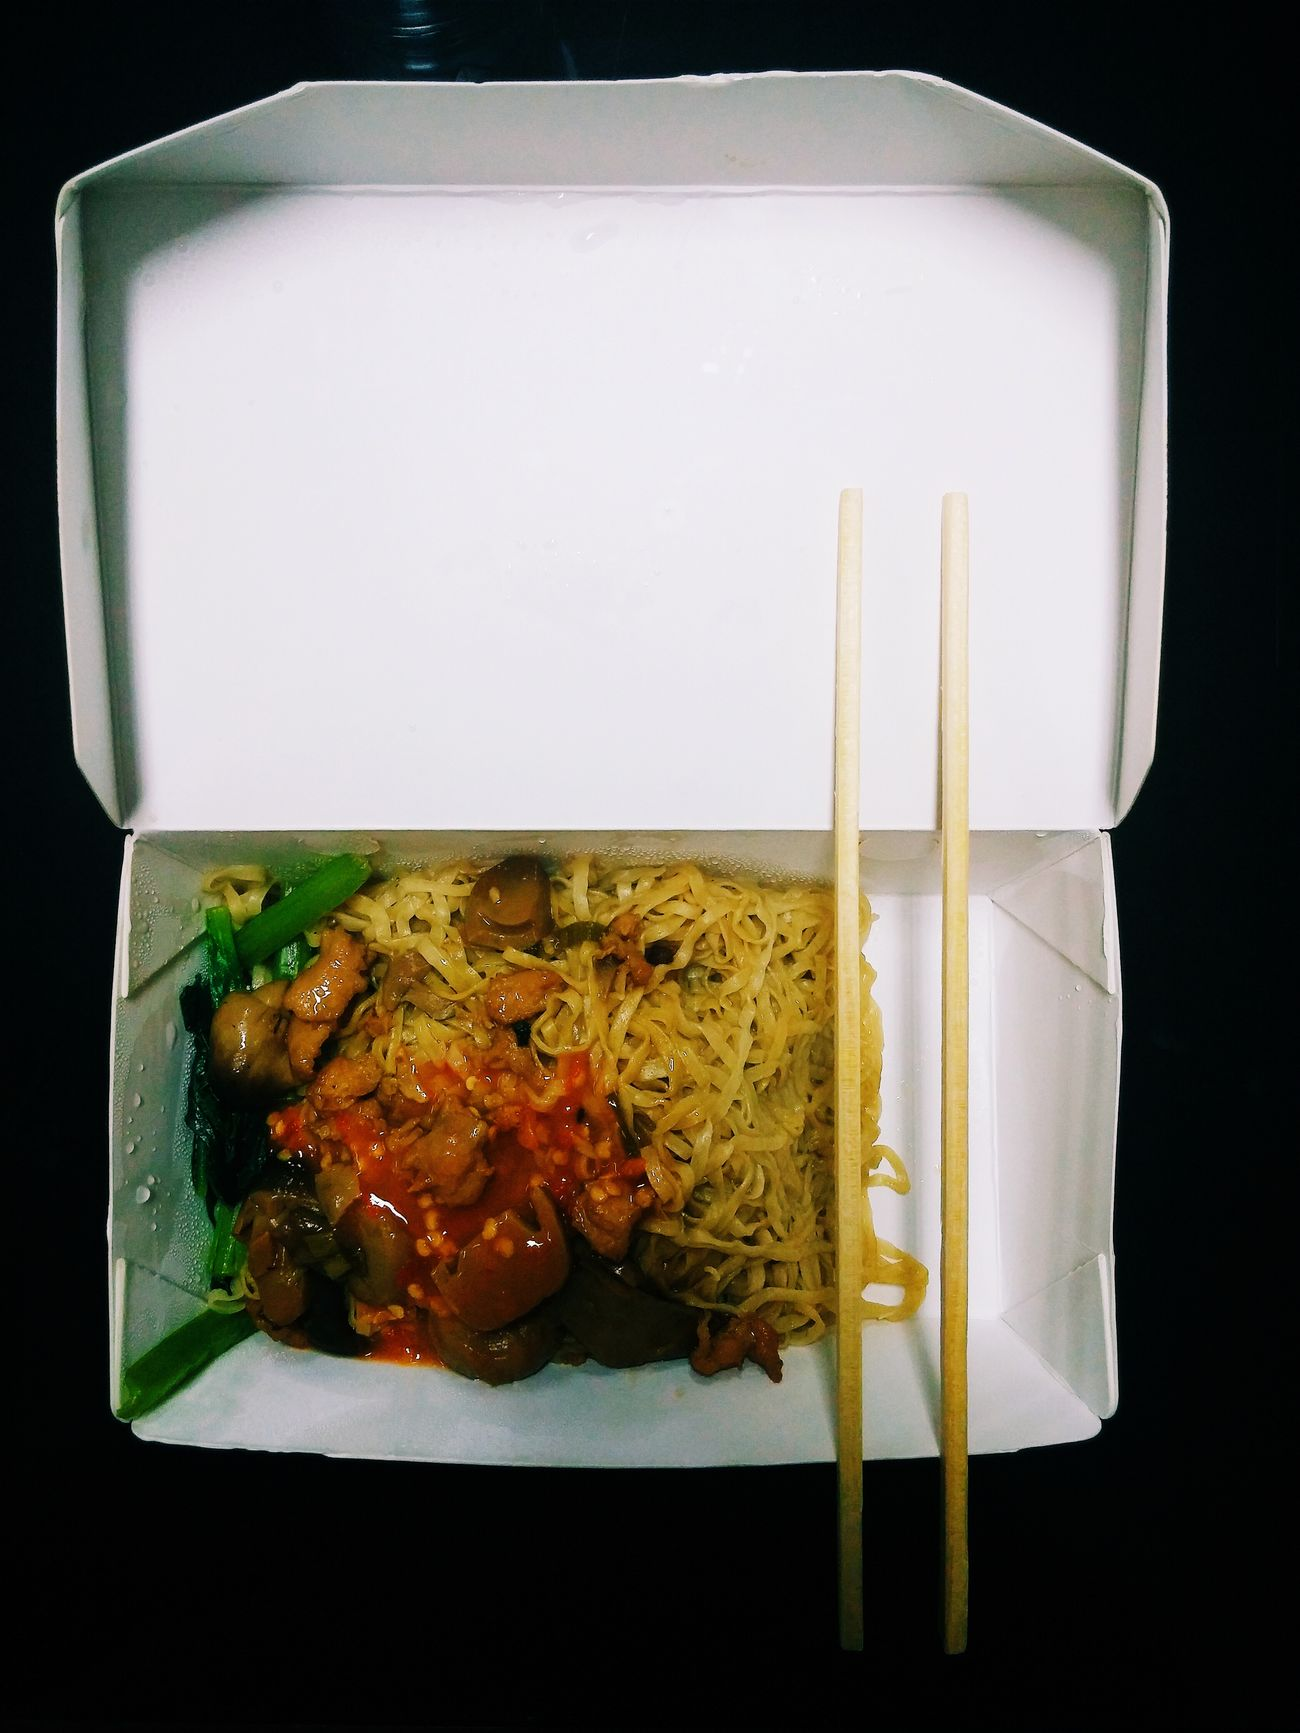 Bakmi Noodle Better Together The Foodie - 2015 EyeEm Awards Time For Breakfast